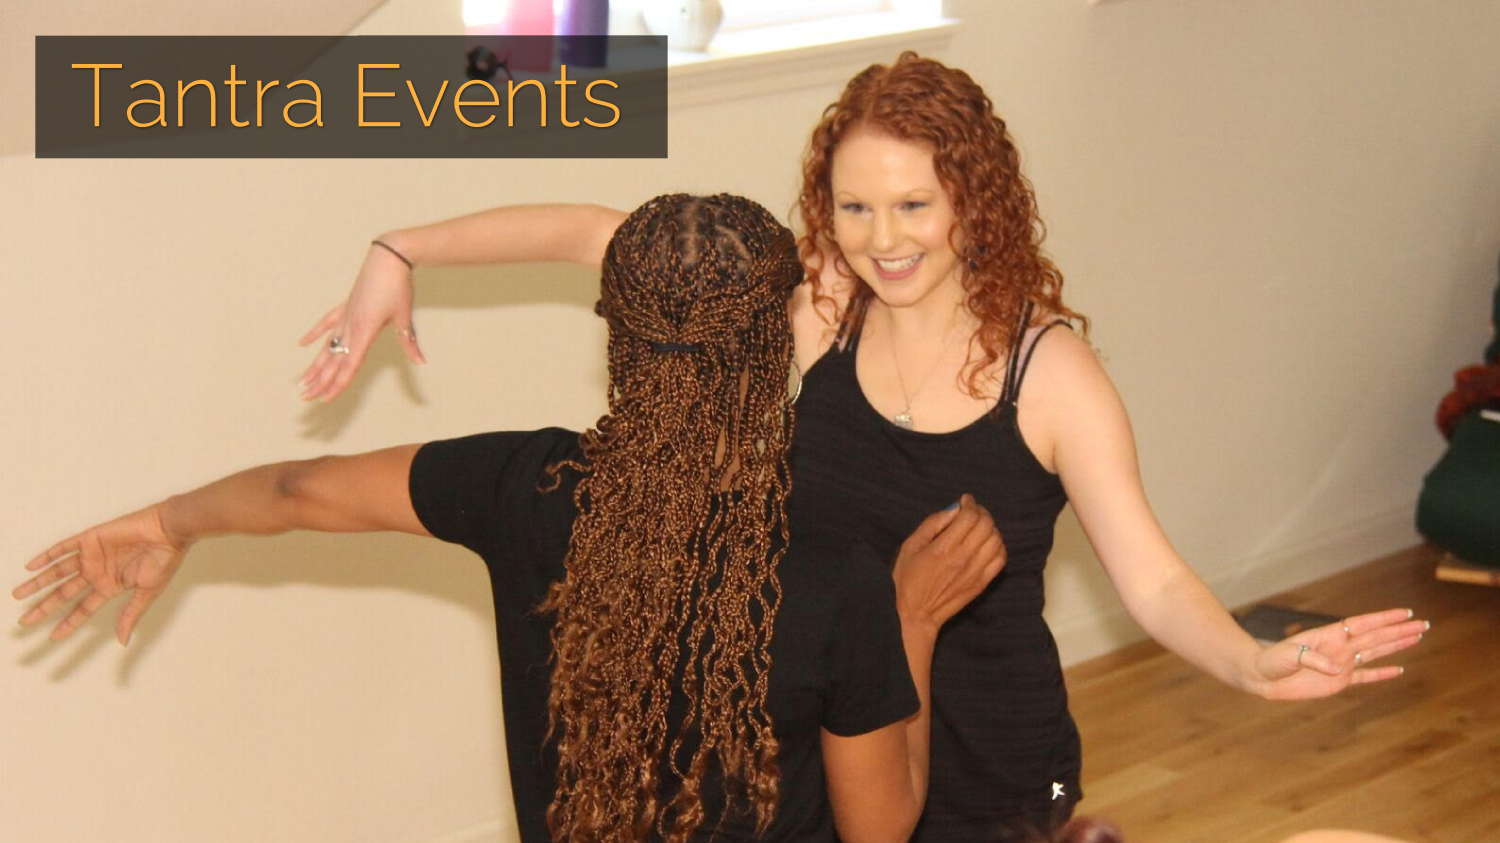 Tantra Events